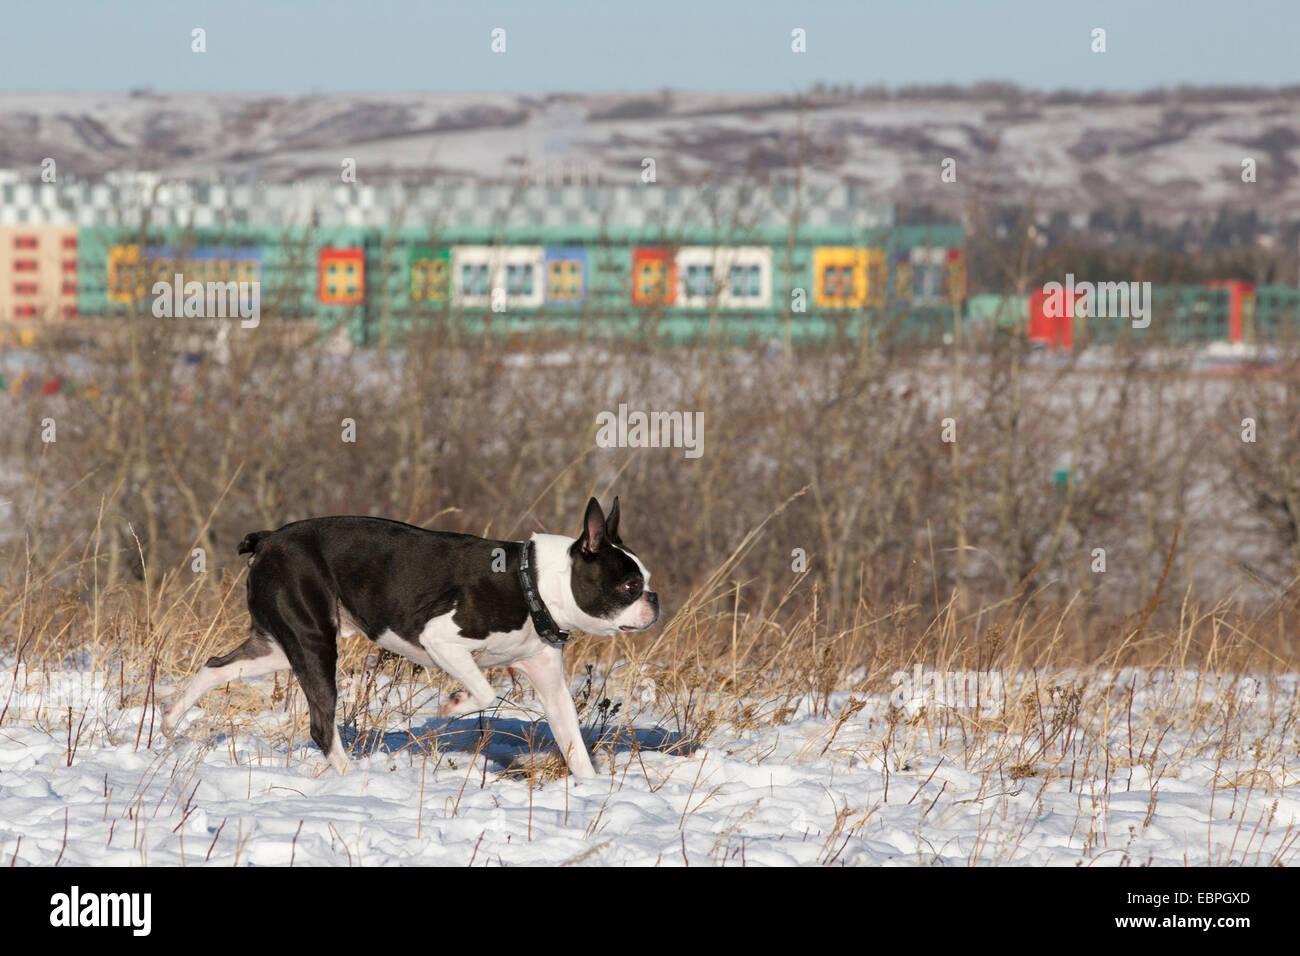 Eleven year-old Boston Terrier running free in off-leash area of city park. - Stock Image